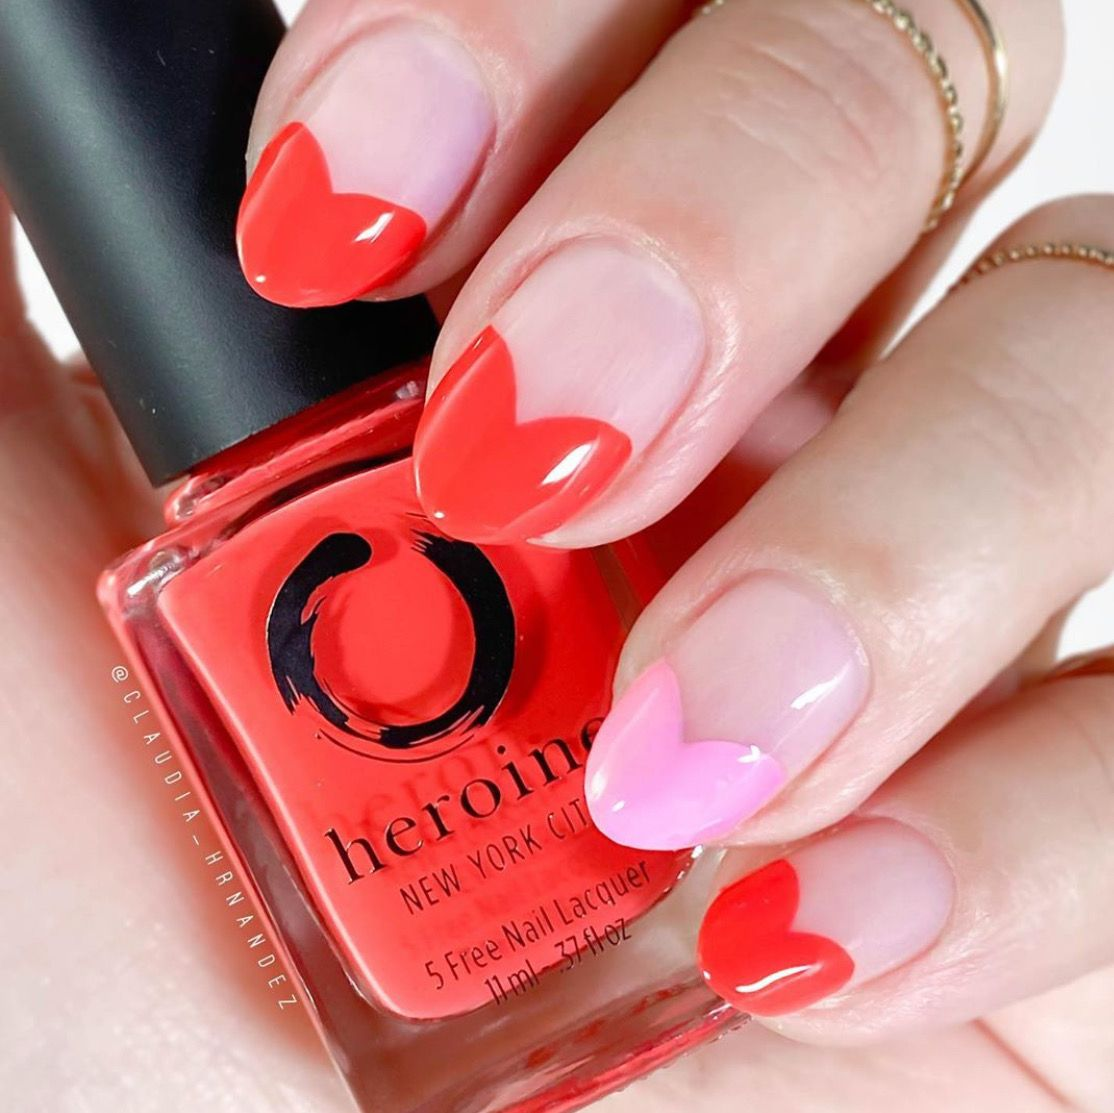 Heat wave in 2020 with images cruelty free nail polish